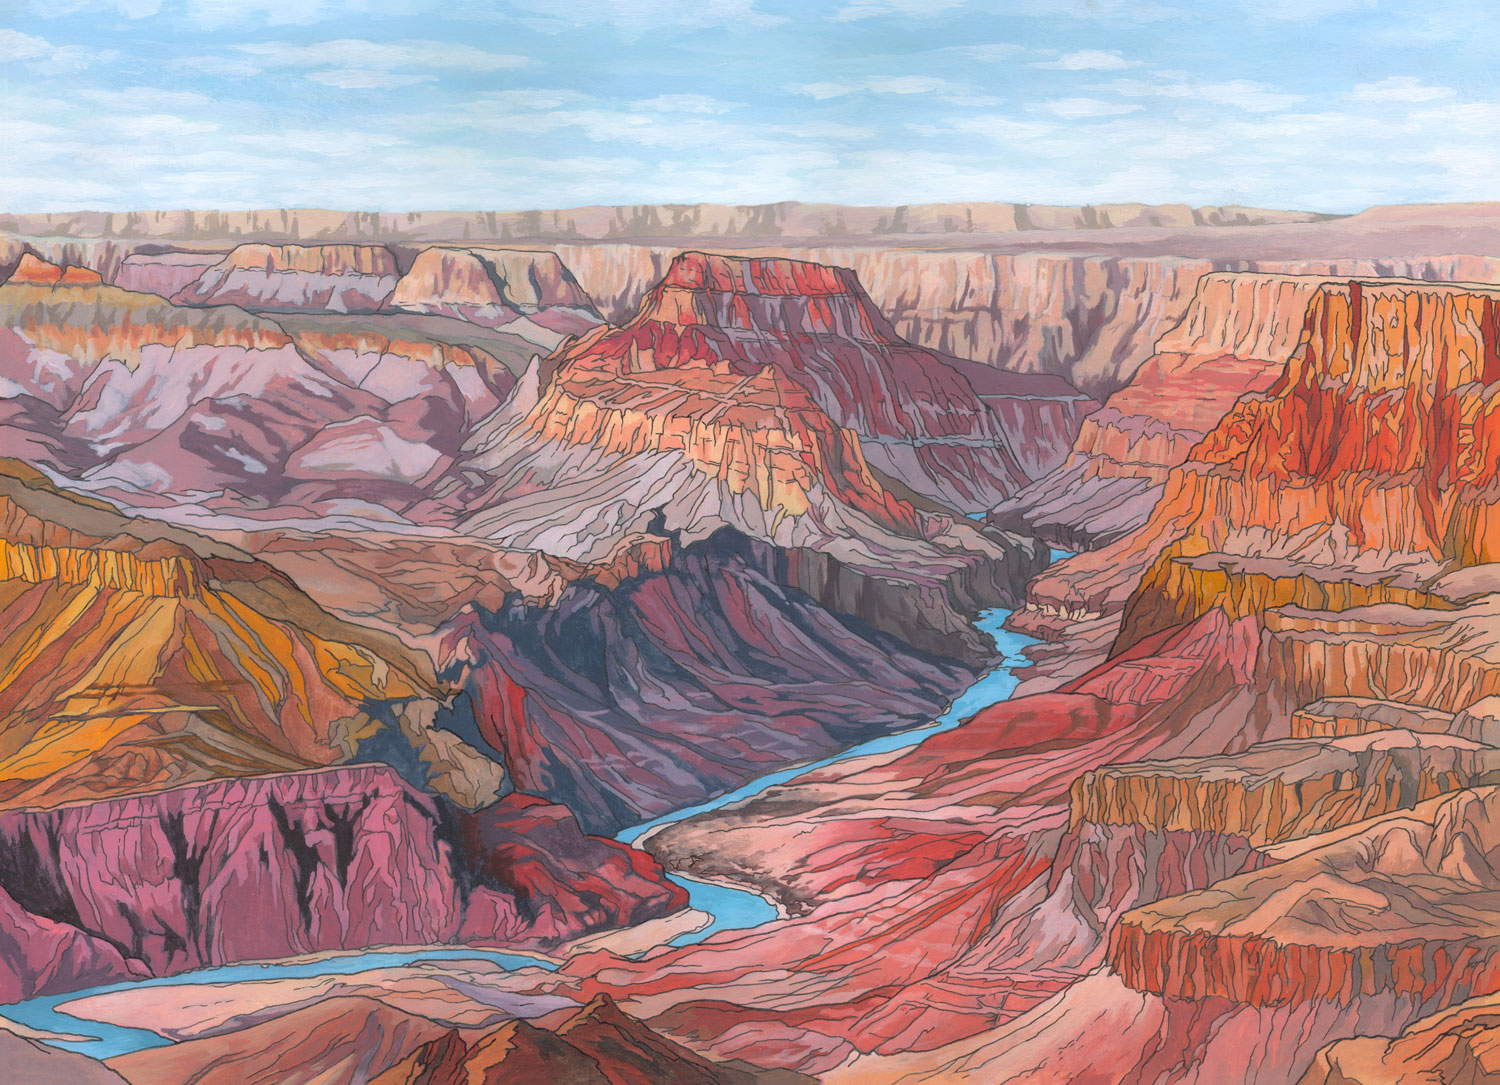 Grand-Canyon-Illustration-by-Jonathan-Chapman